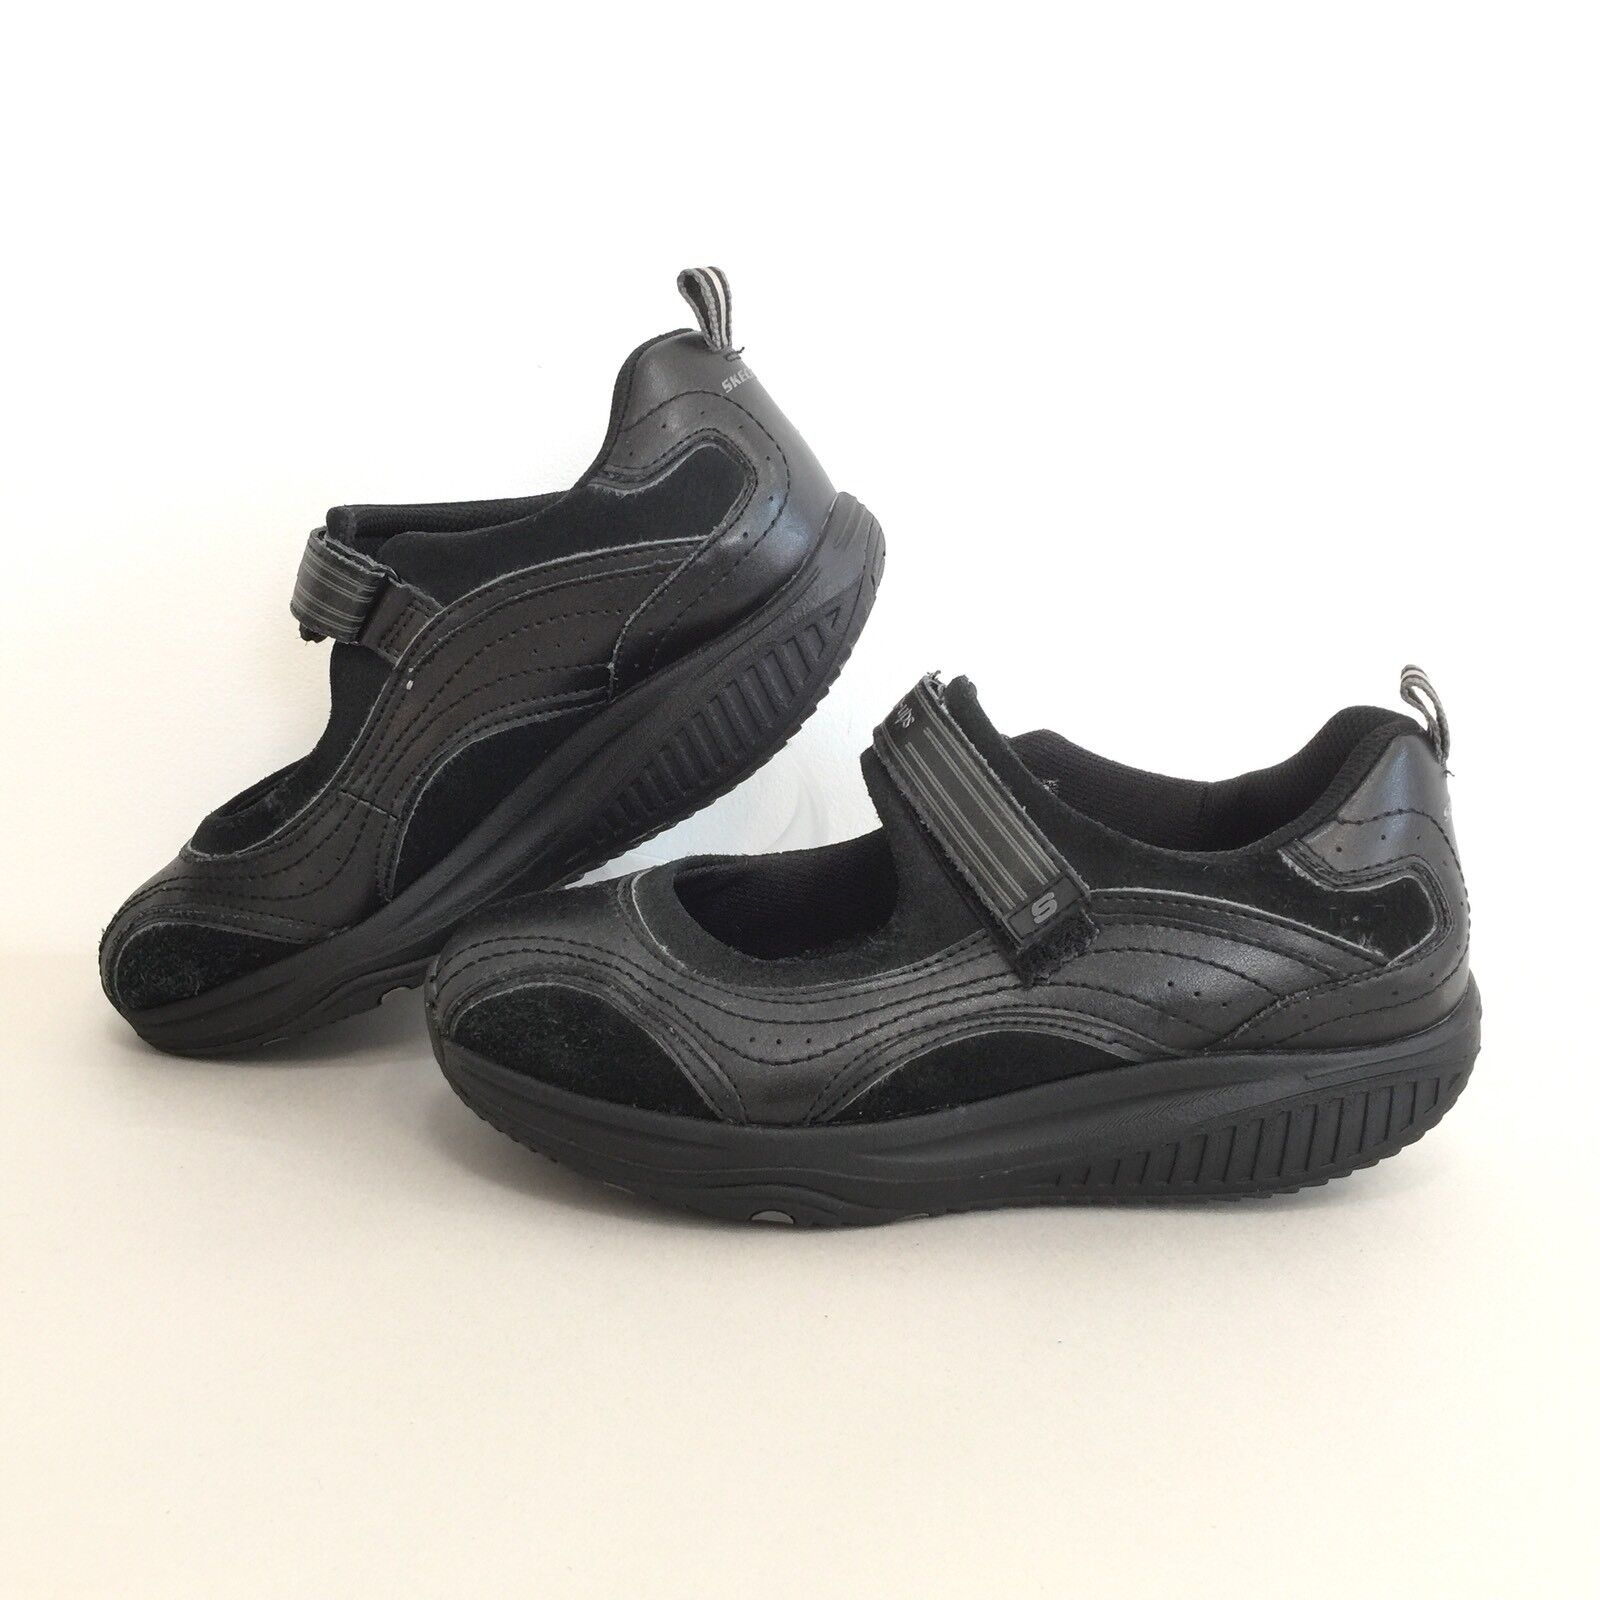 Skechers Shape Ups Womens Sz 8 Black Leather Mary Jane Exercise shoes EUR 38